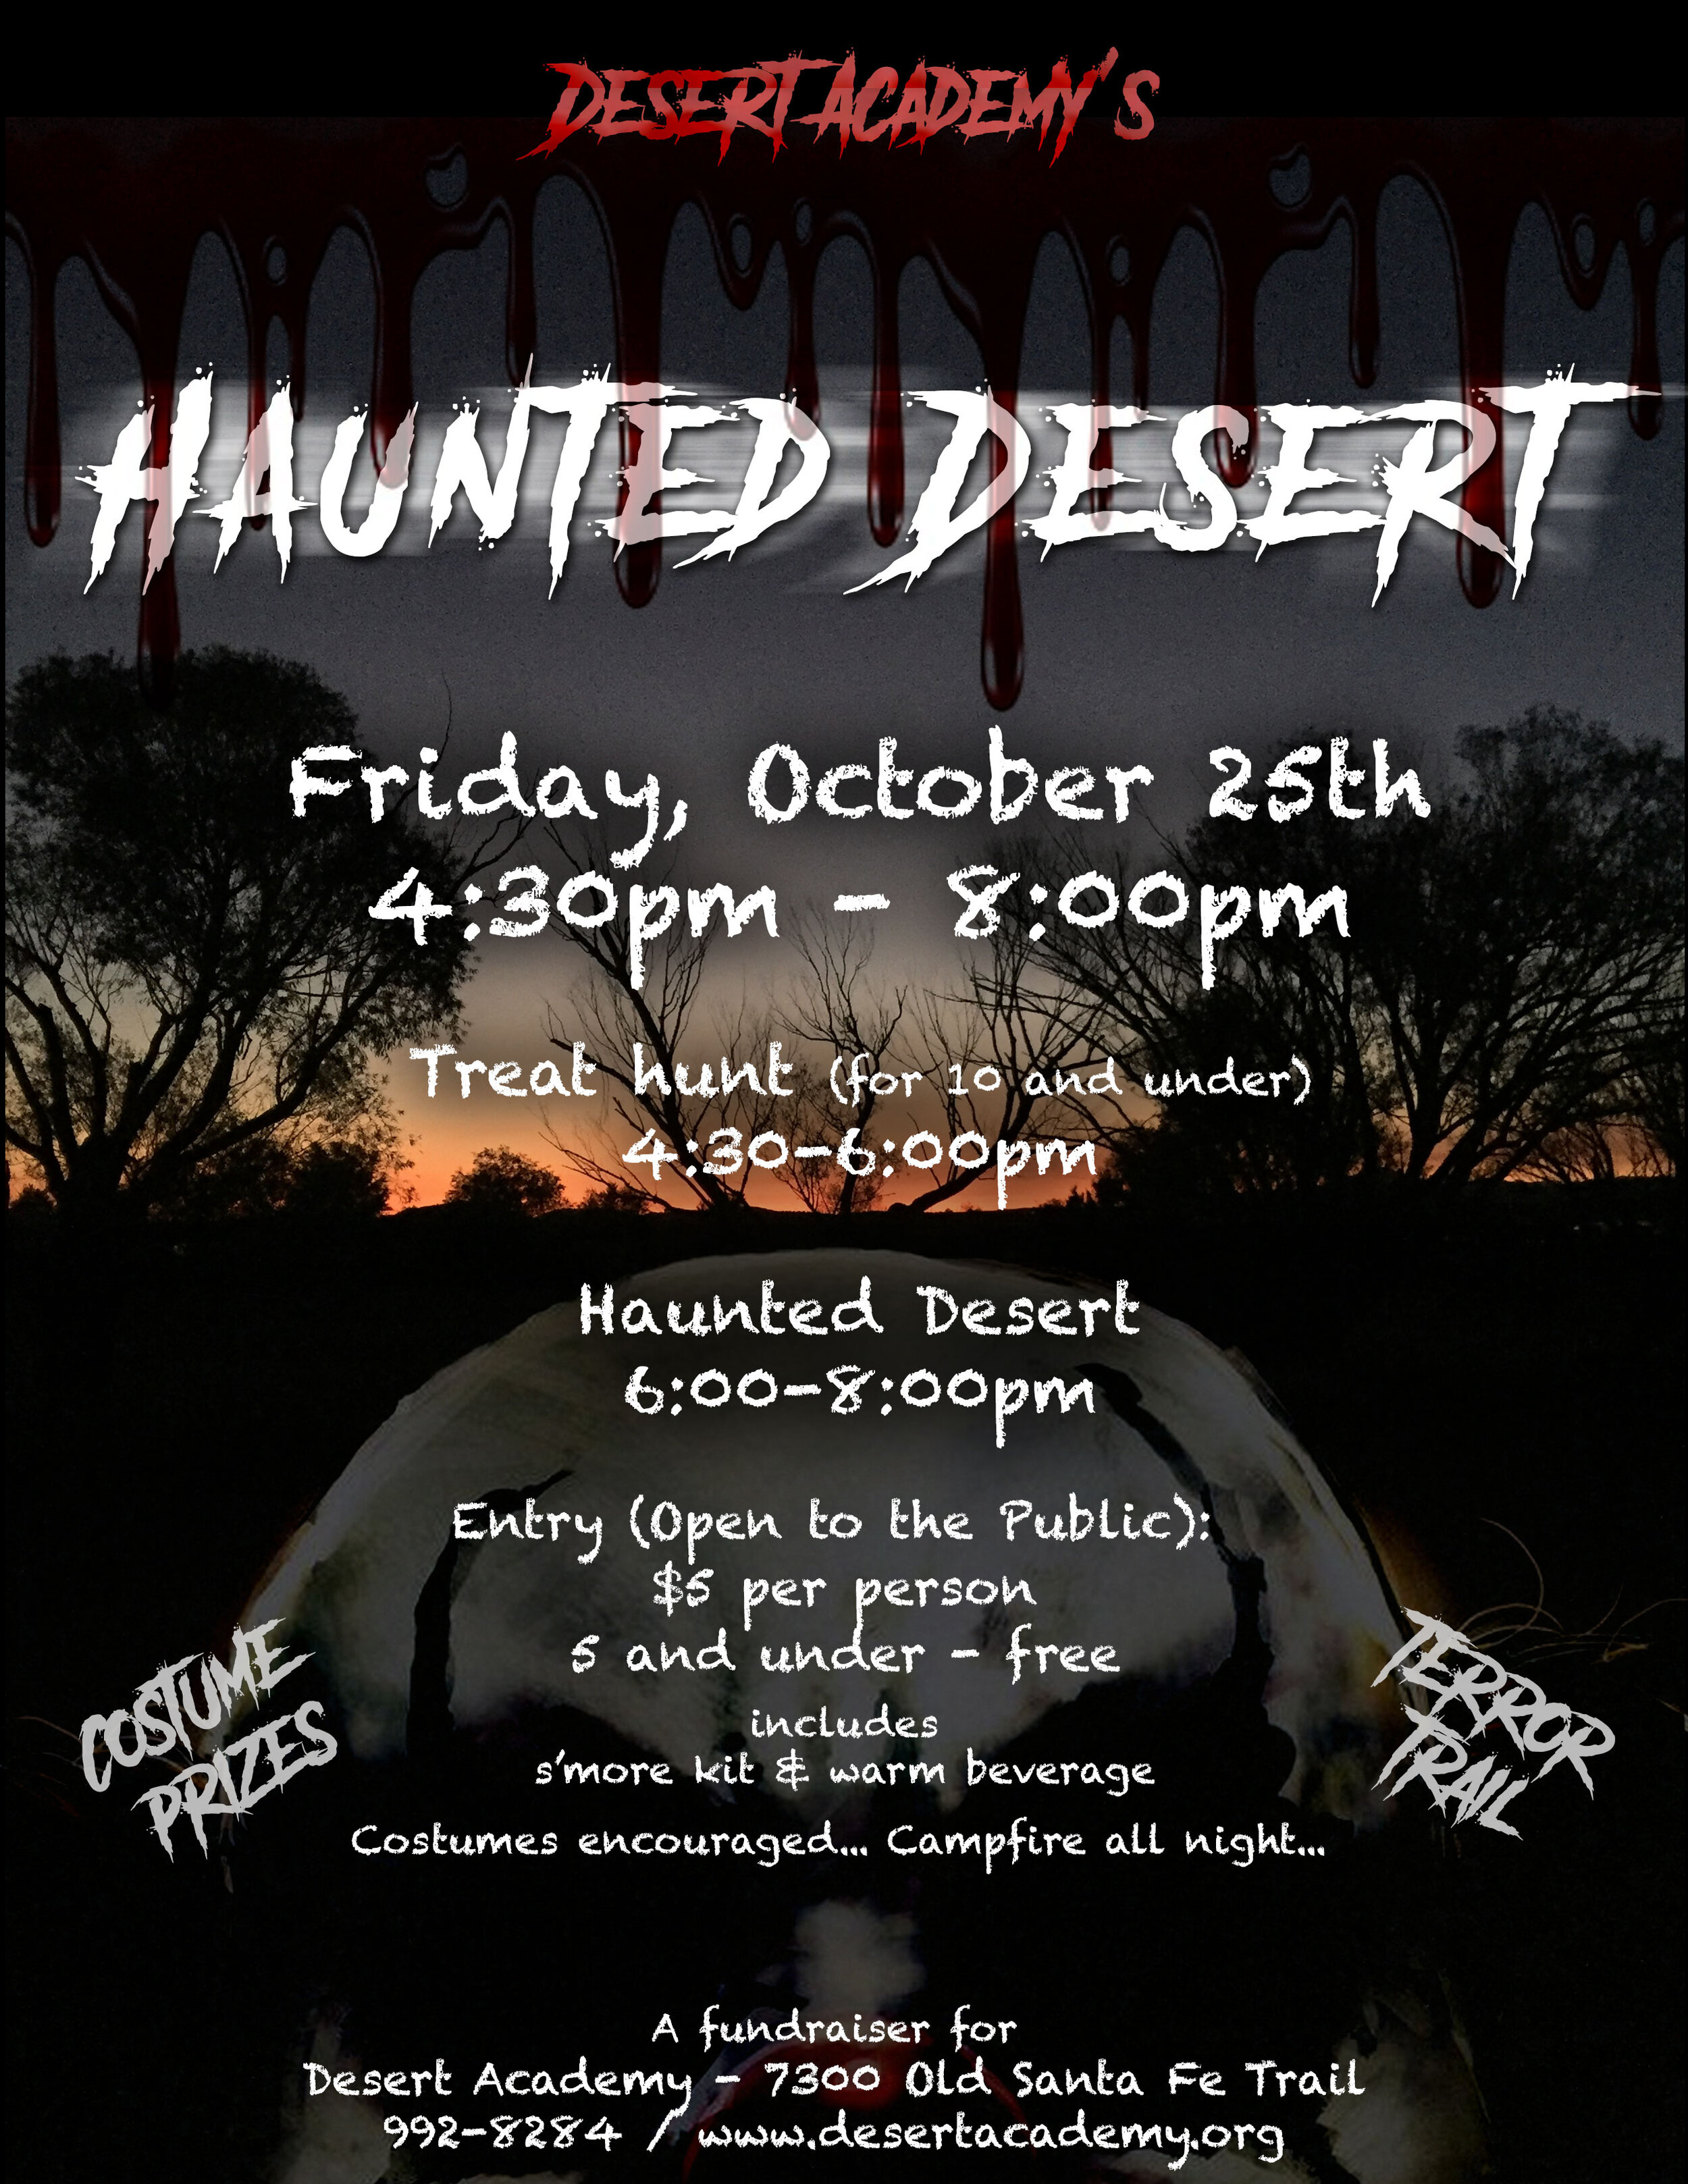 Haunted-Desert-Flyer-web-lg.jpg